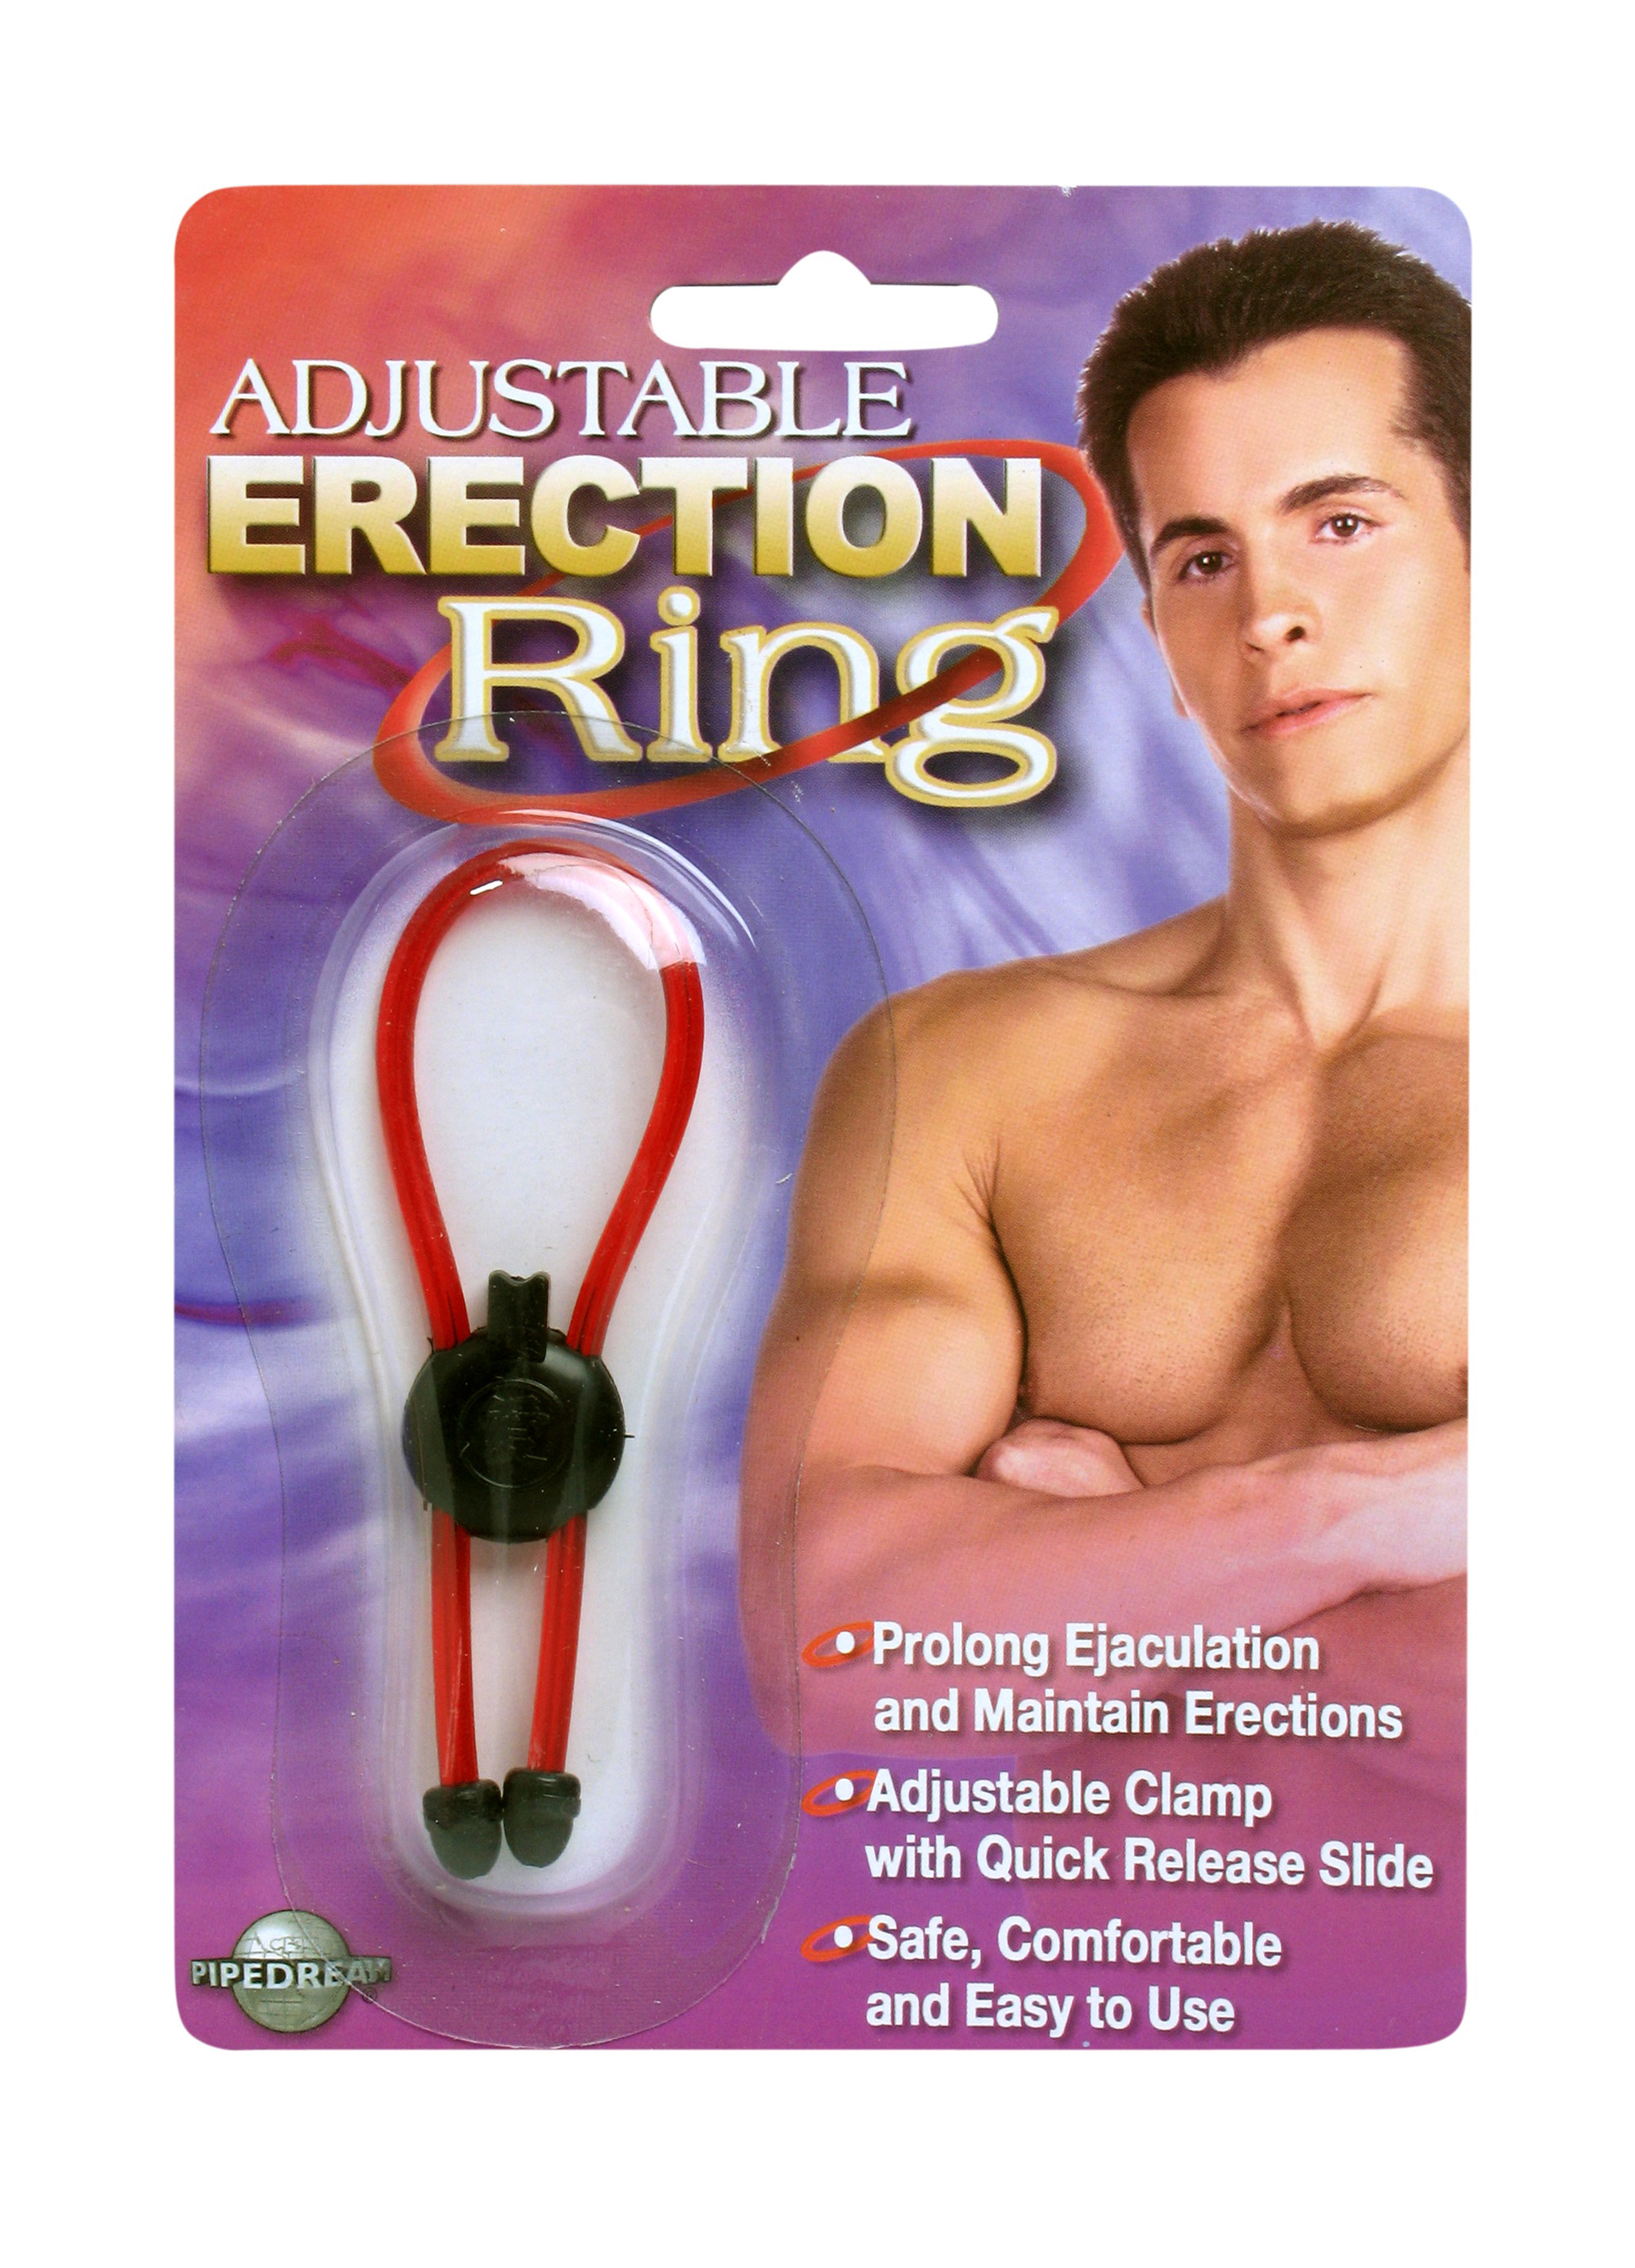 ADJUSTABLE ERECTION RING